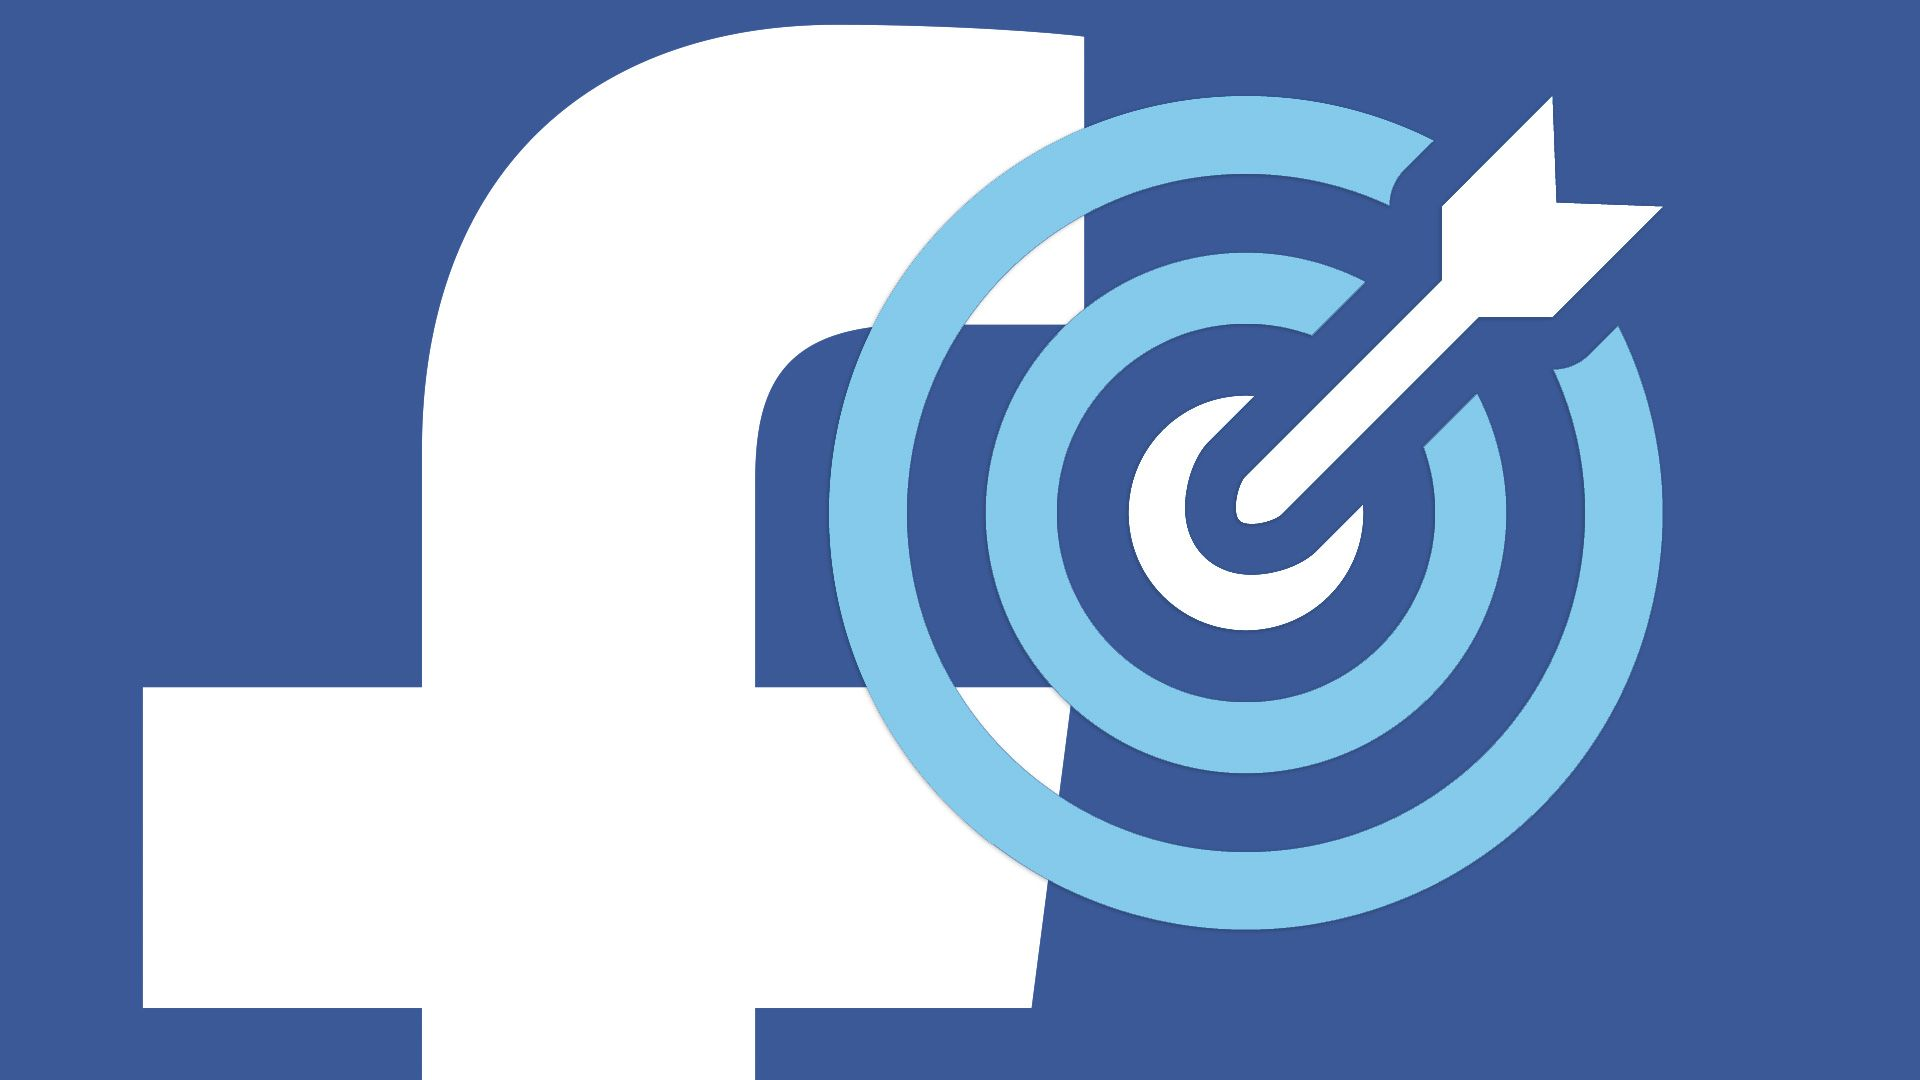 Facebooks success blueprint improved online learning for brands facebook has initiated a major online push to help brands agencies and small businesses improve malvernweather Choice Image